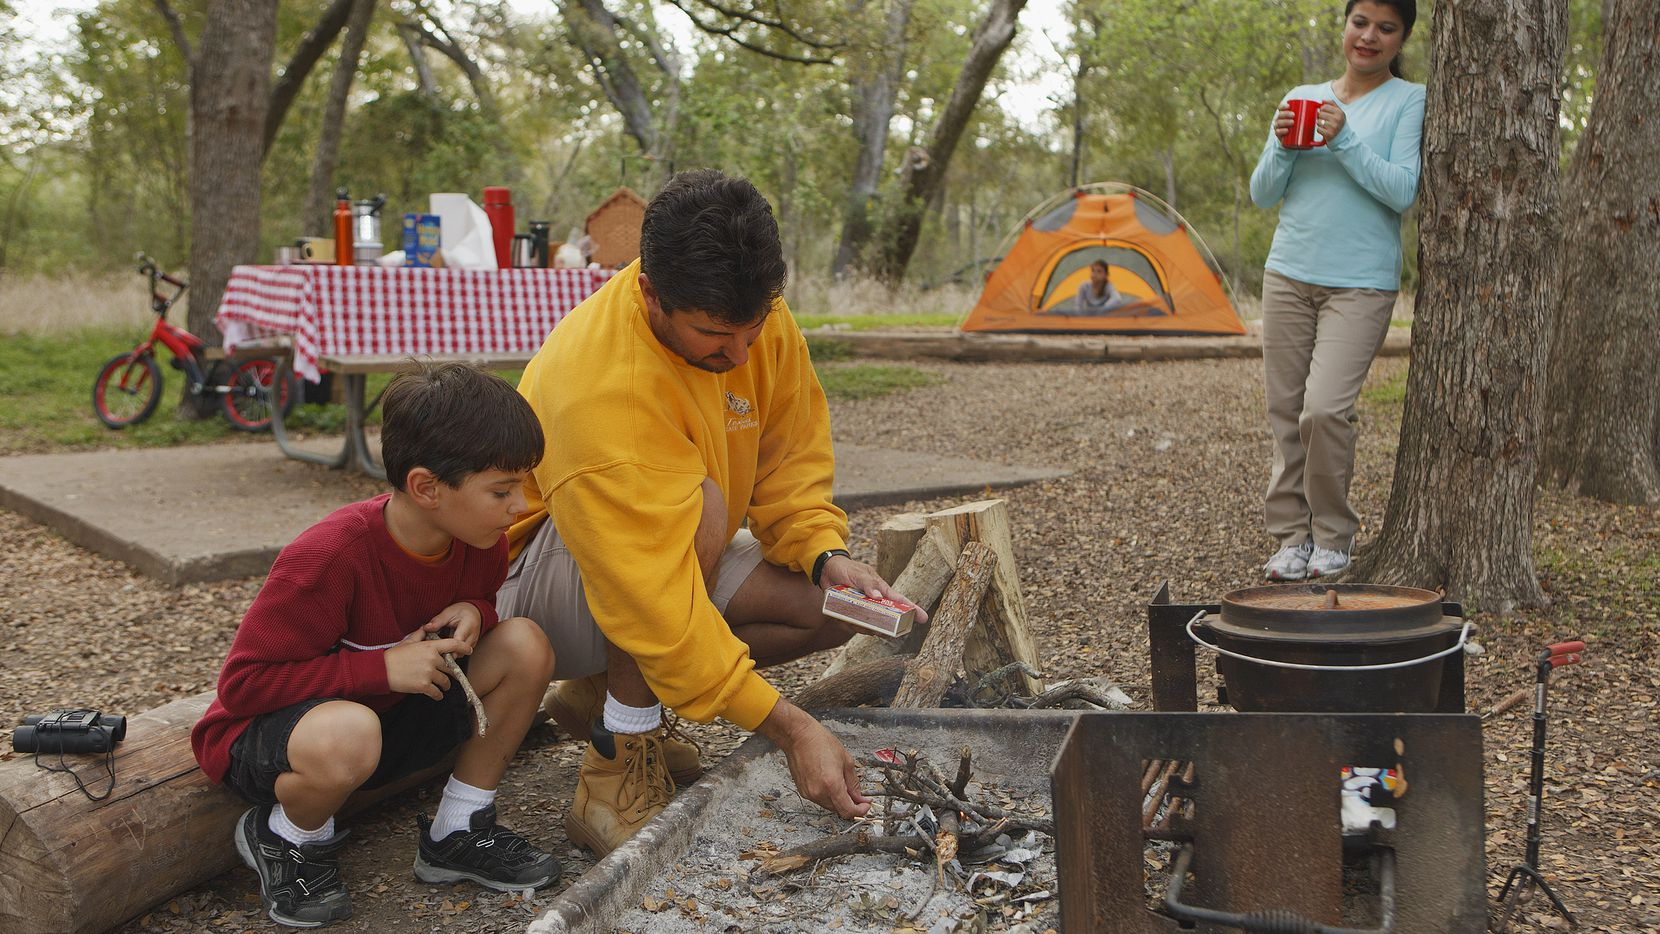 Family fun on a budget: camping at a state park.